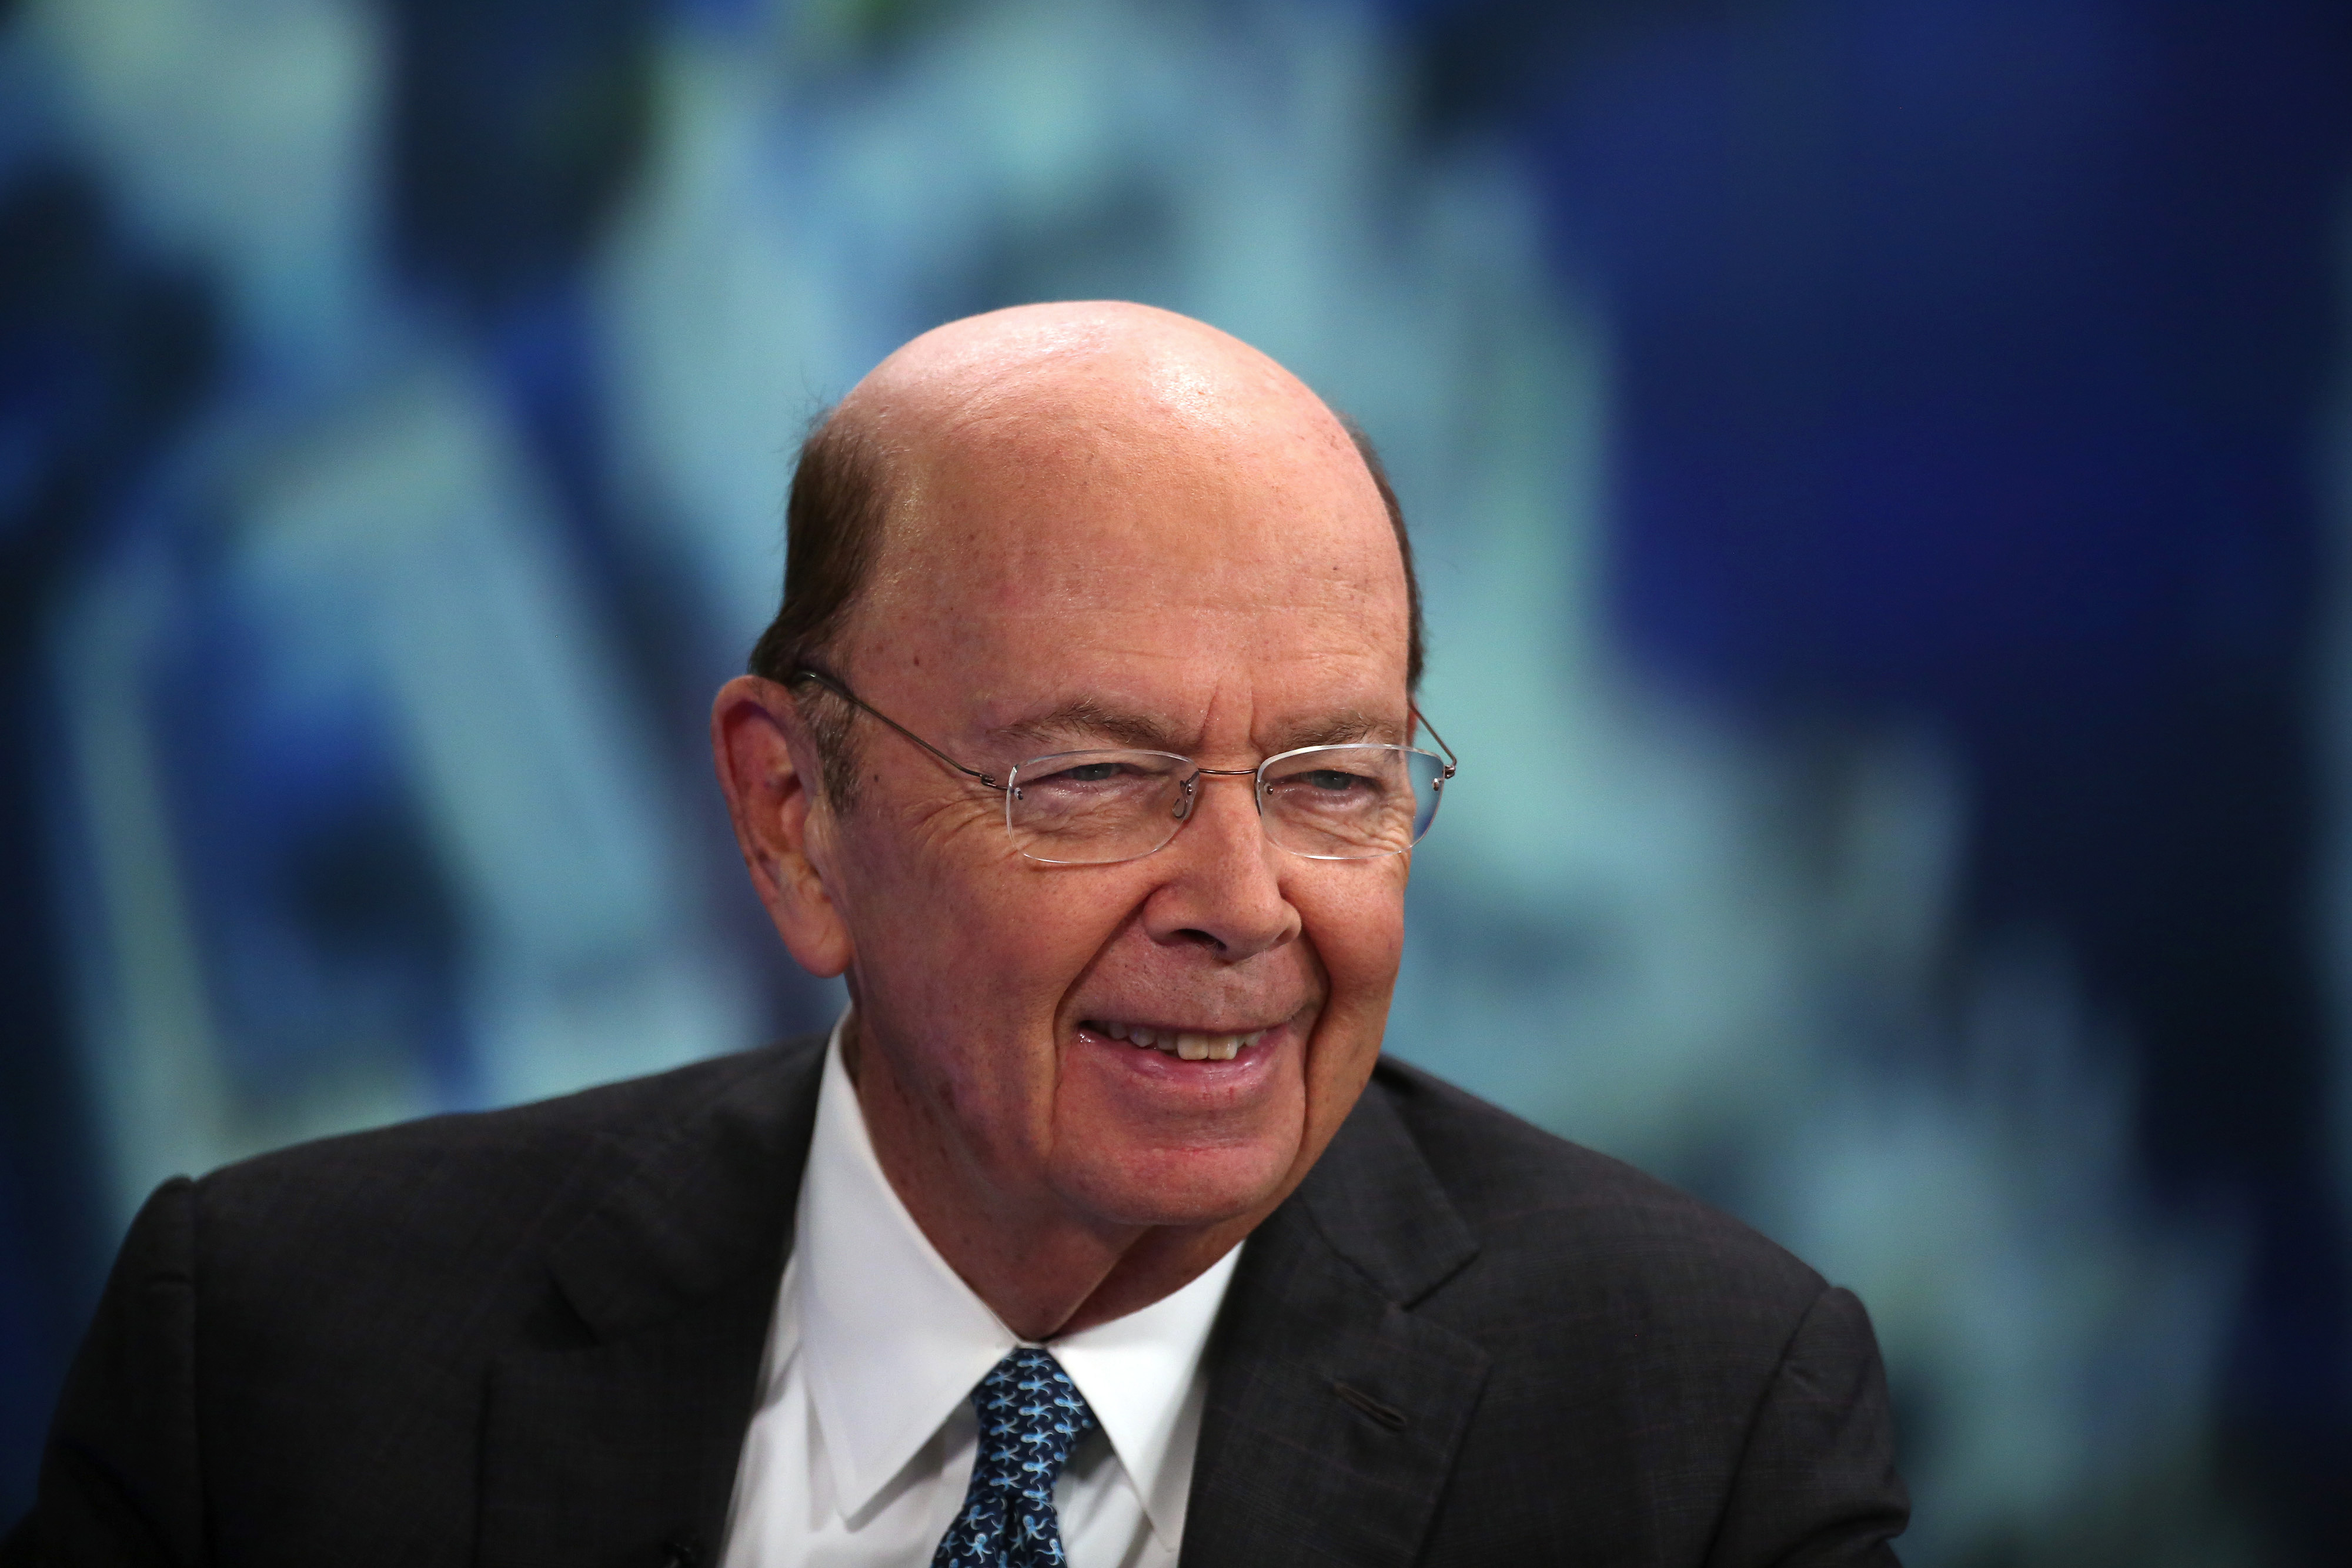 Billionaire And Chief Executive Officer Of WL Ross & Co. LLC Wilbur Ross